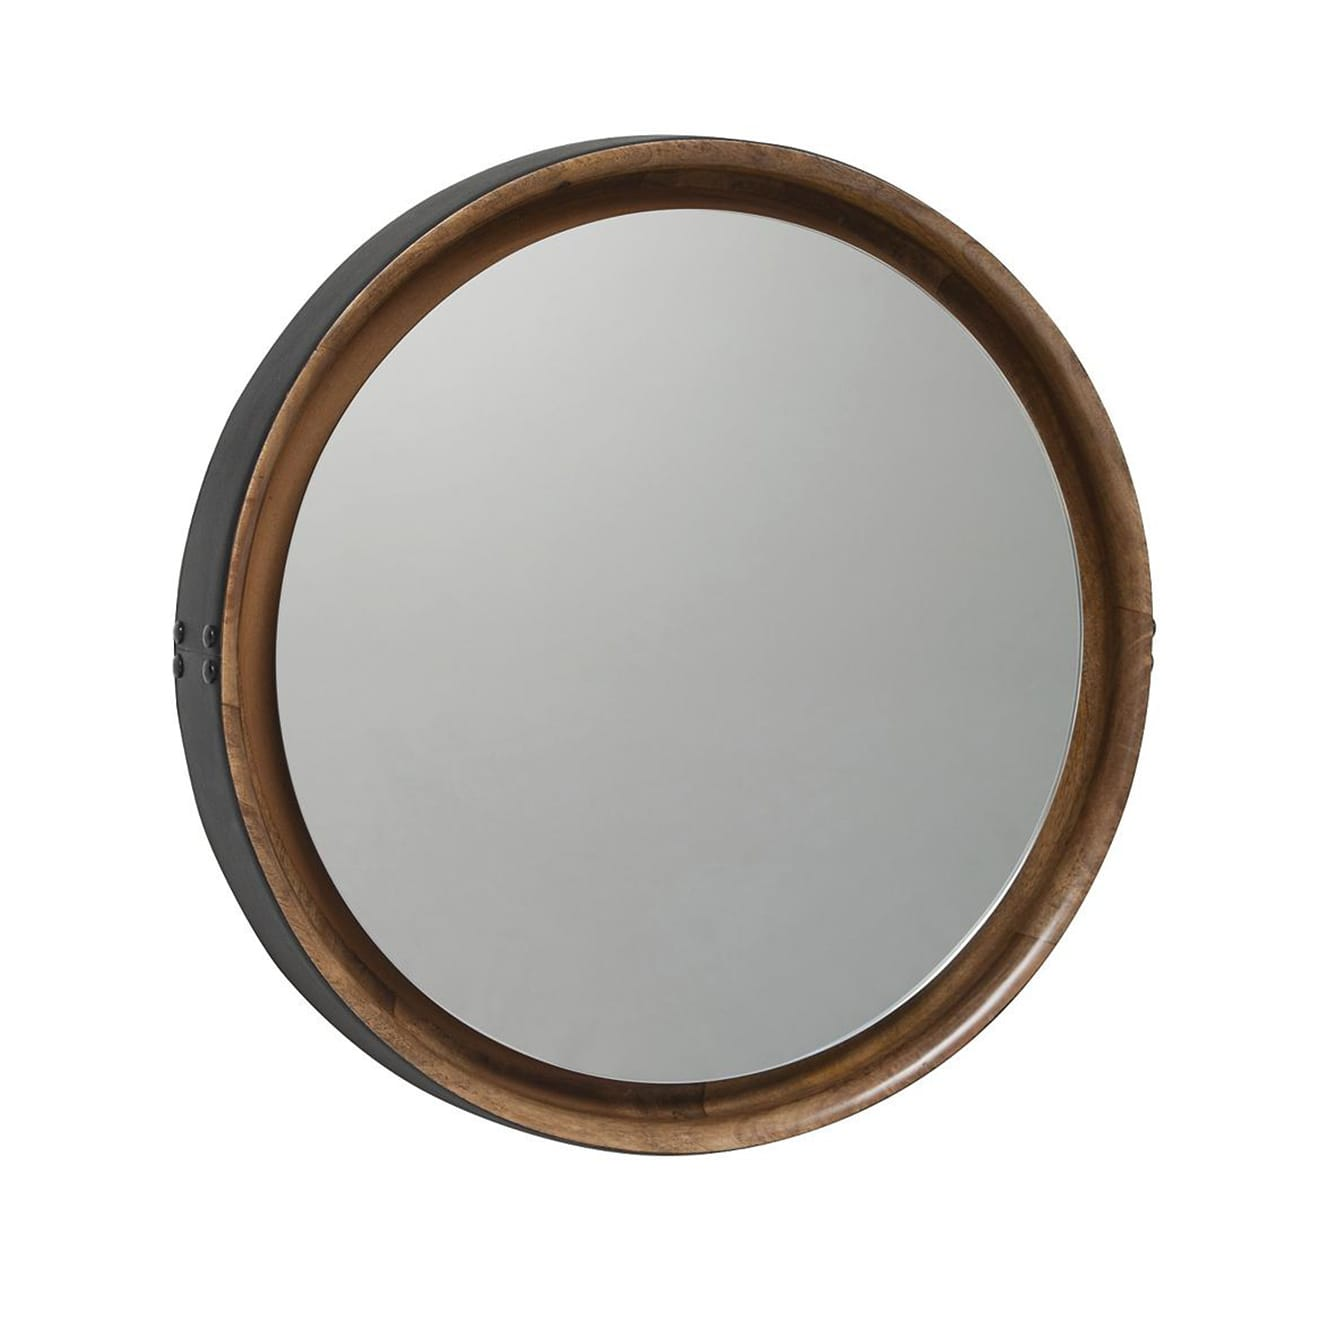 Sophie Mirror - Large by Mater